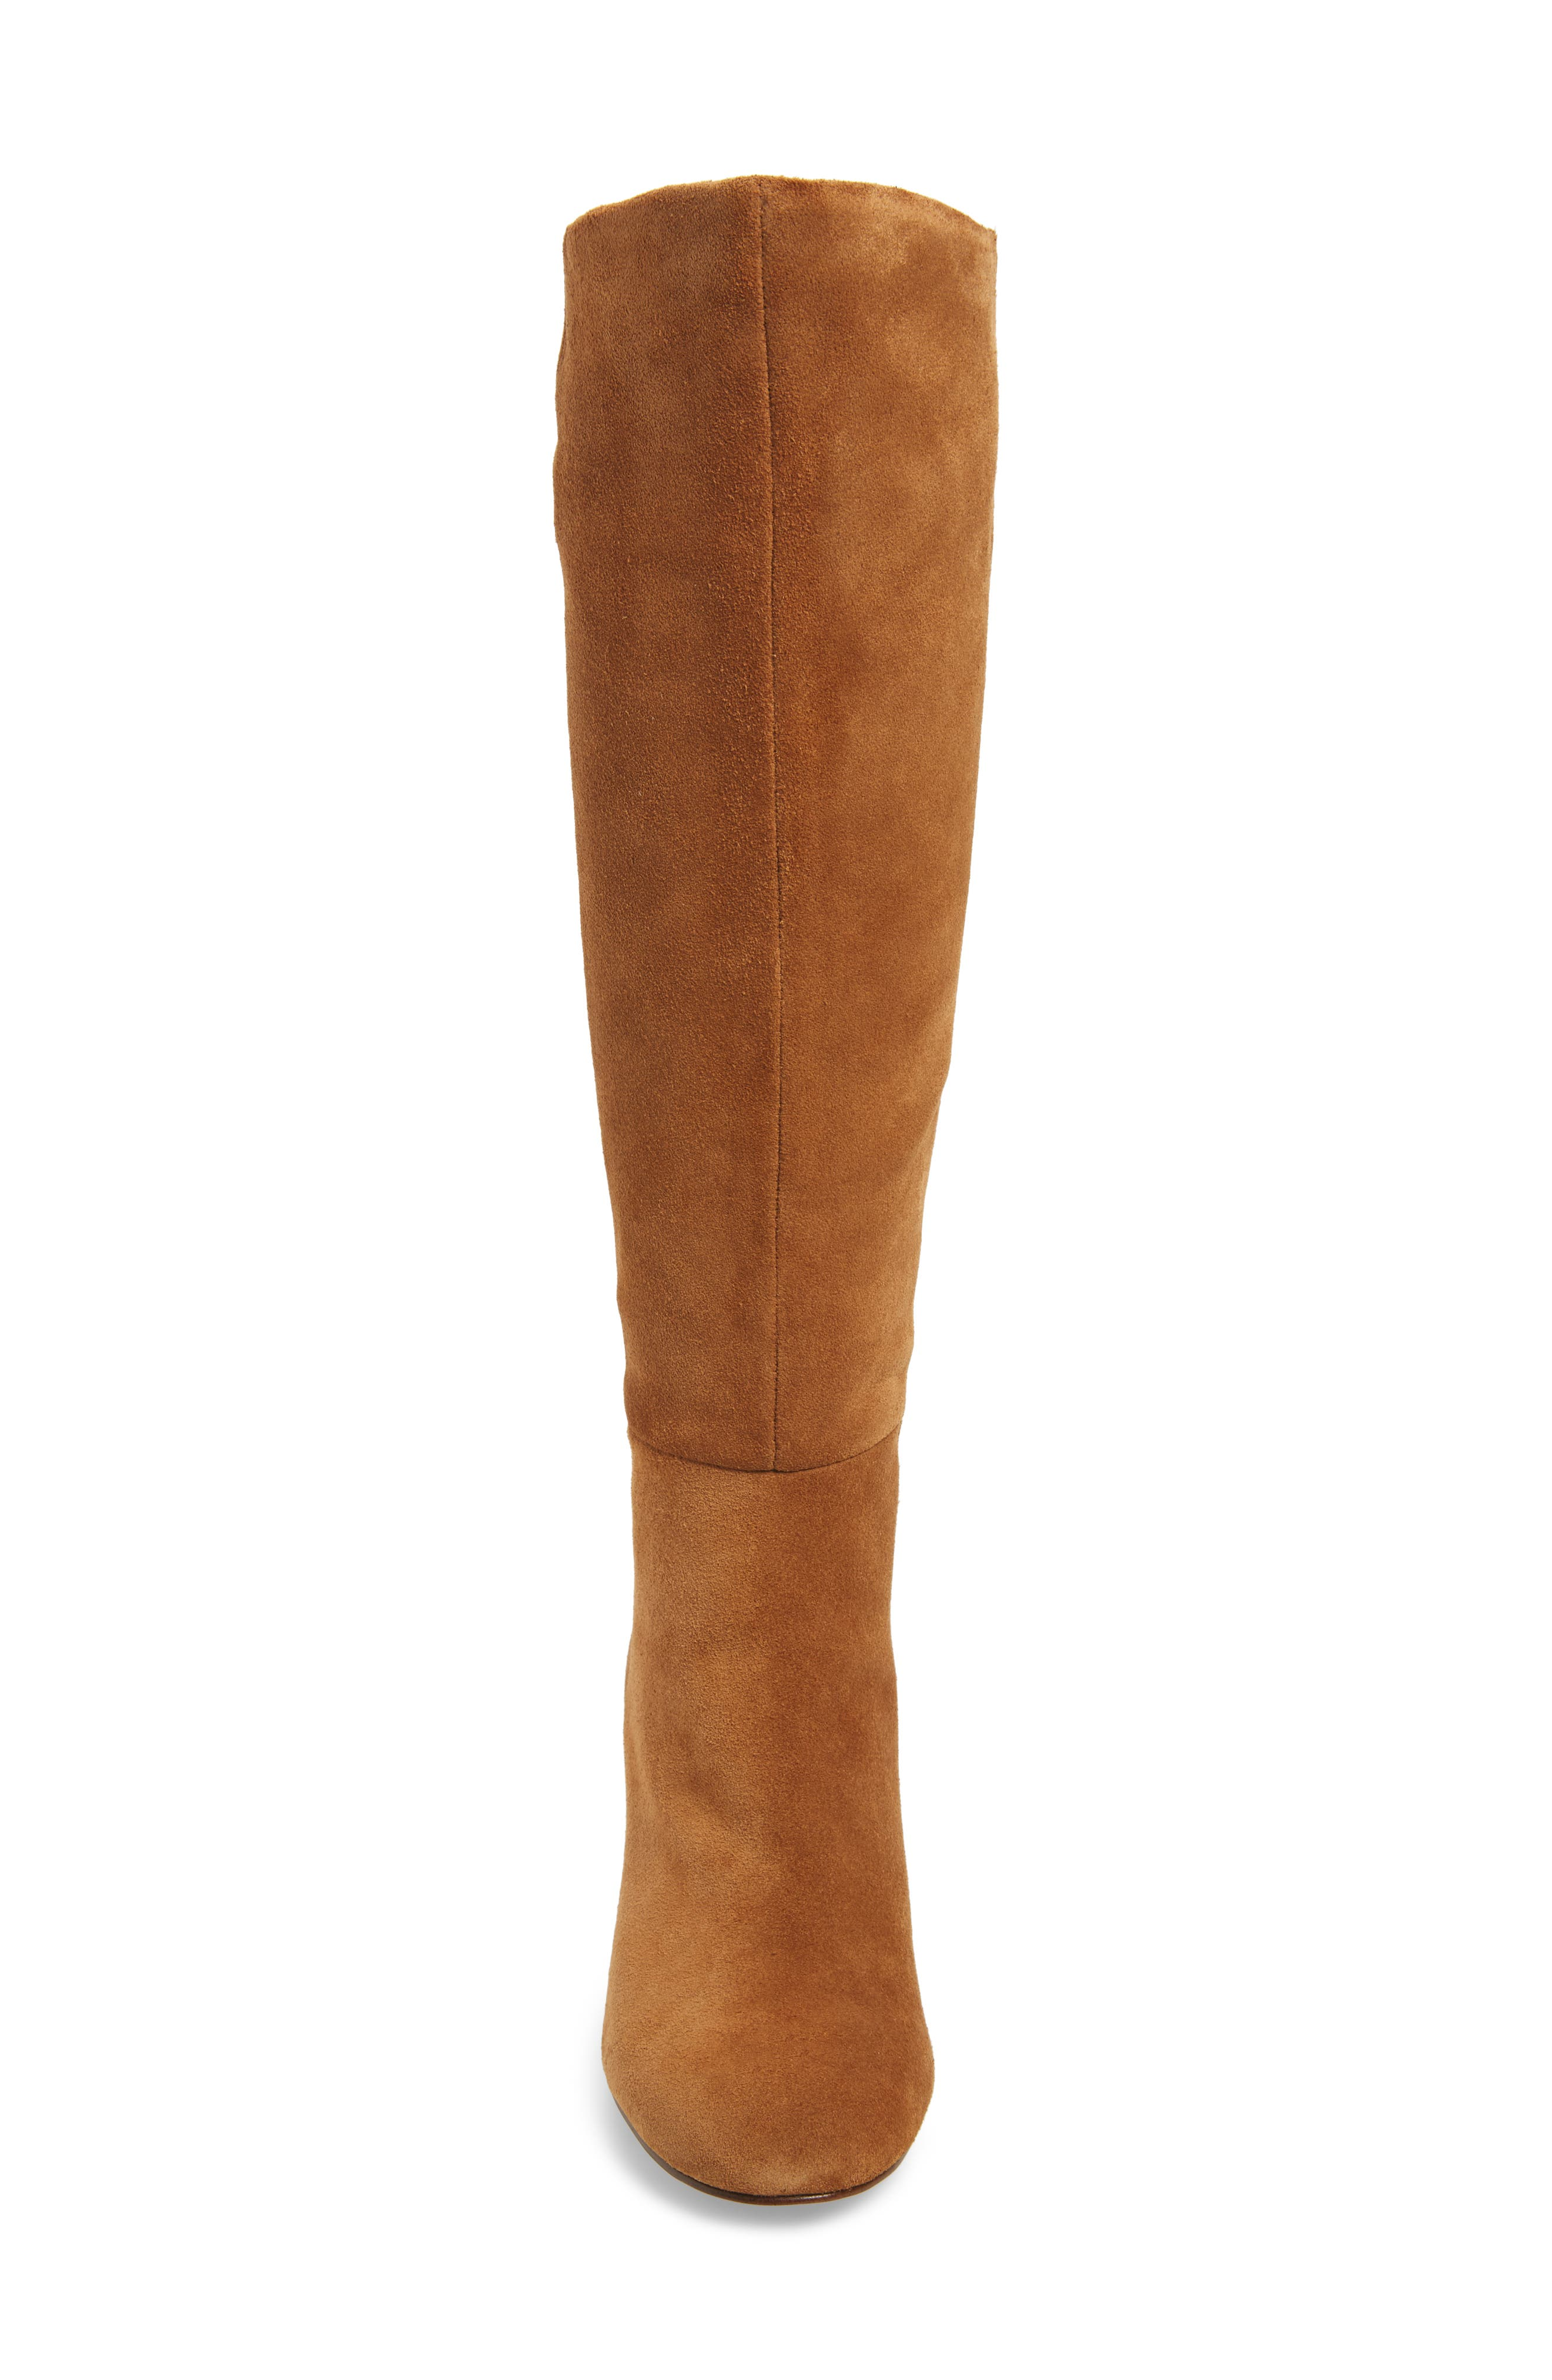 Danise Knee High Boot,                             Alternate thumbnail 4, color,                             Chestnut Suede